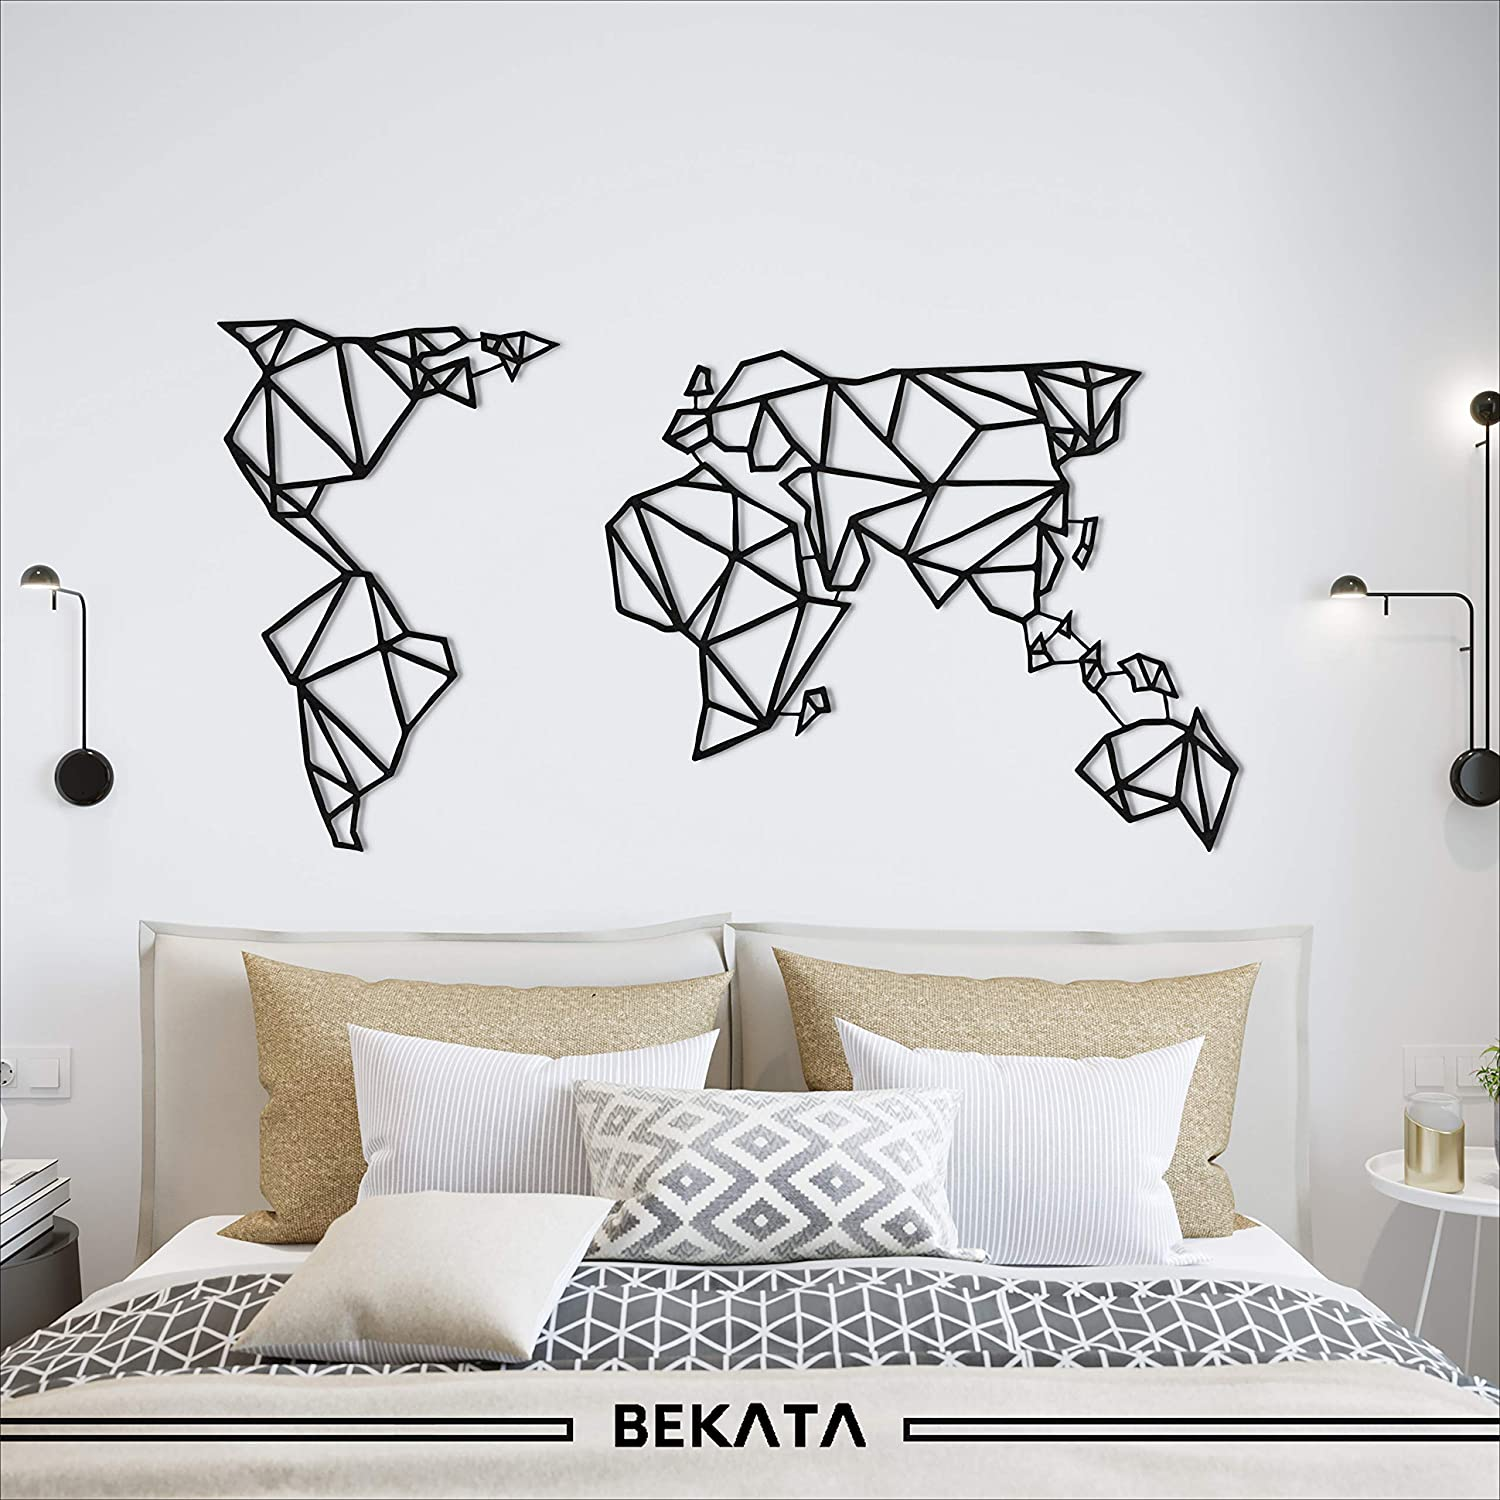 BEKATA Metal Wall Decor, World Map Black Metal Wall Art, Black ...